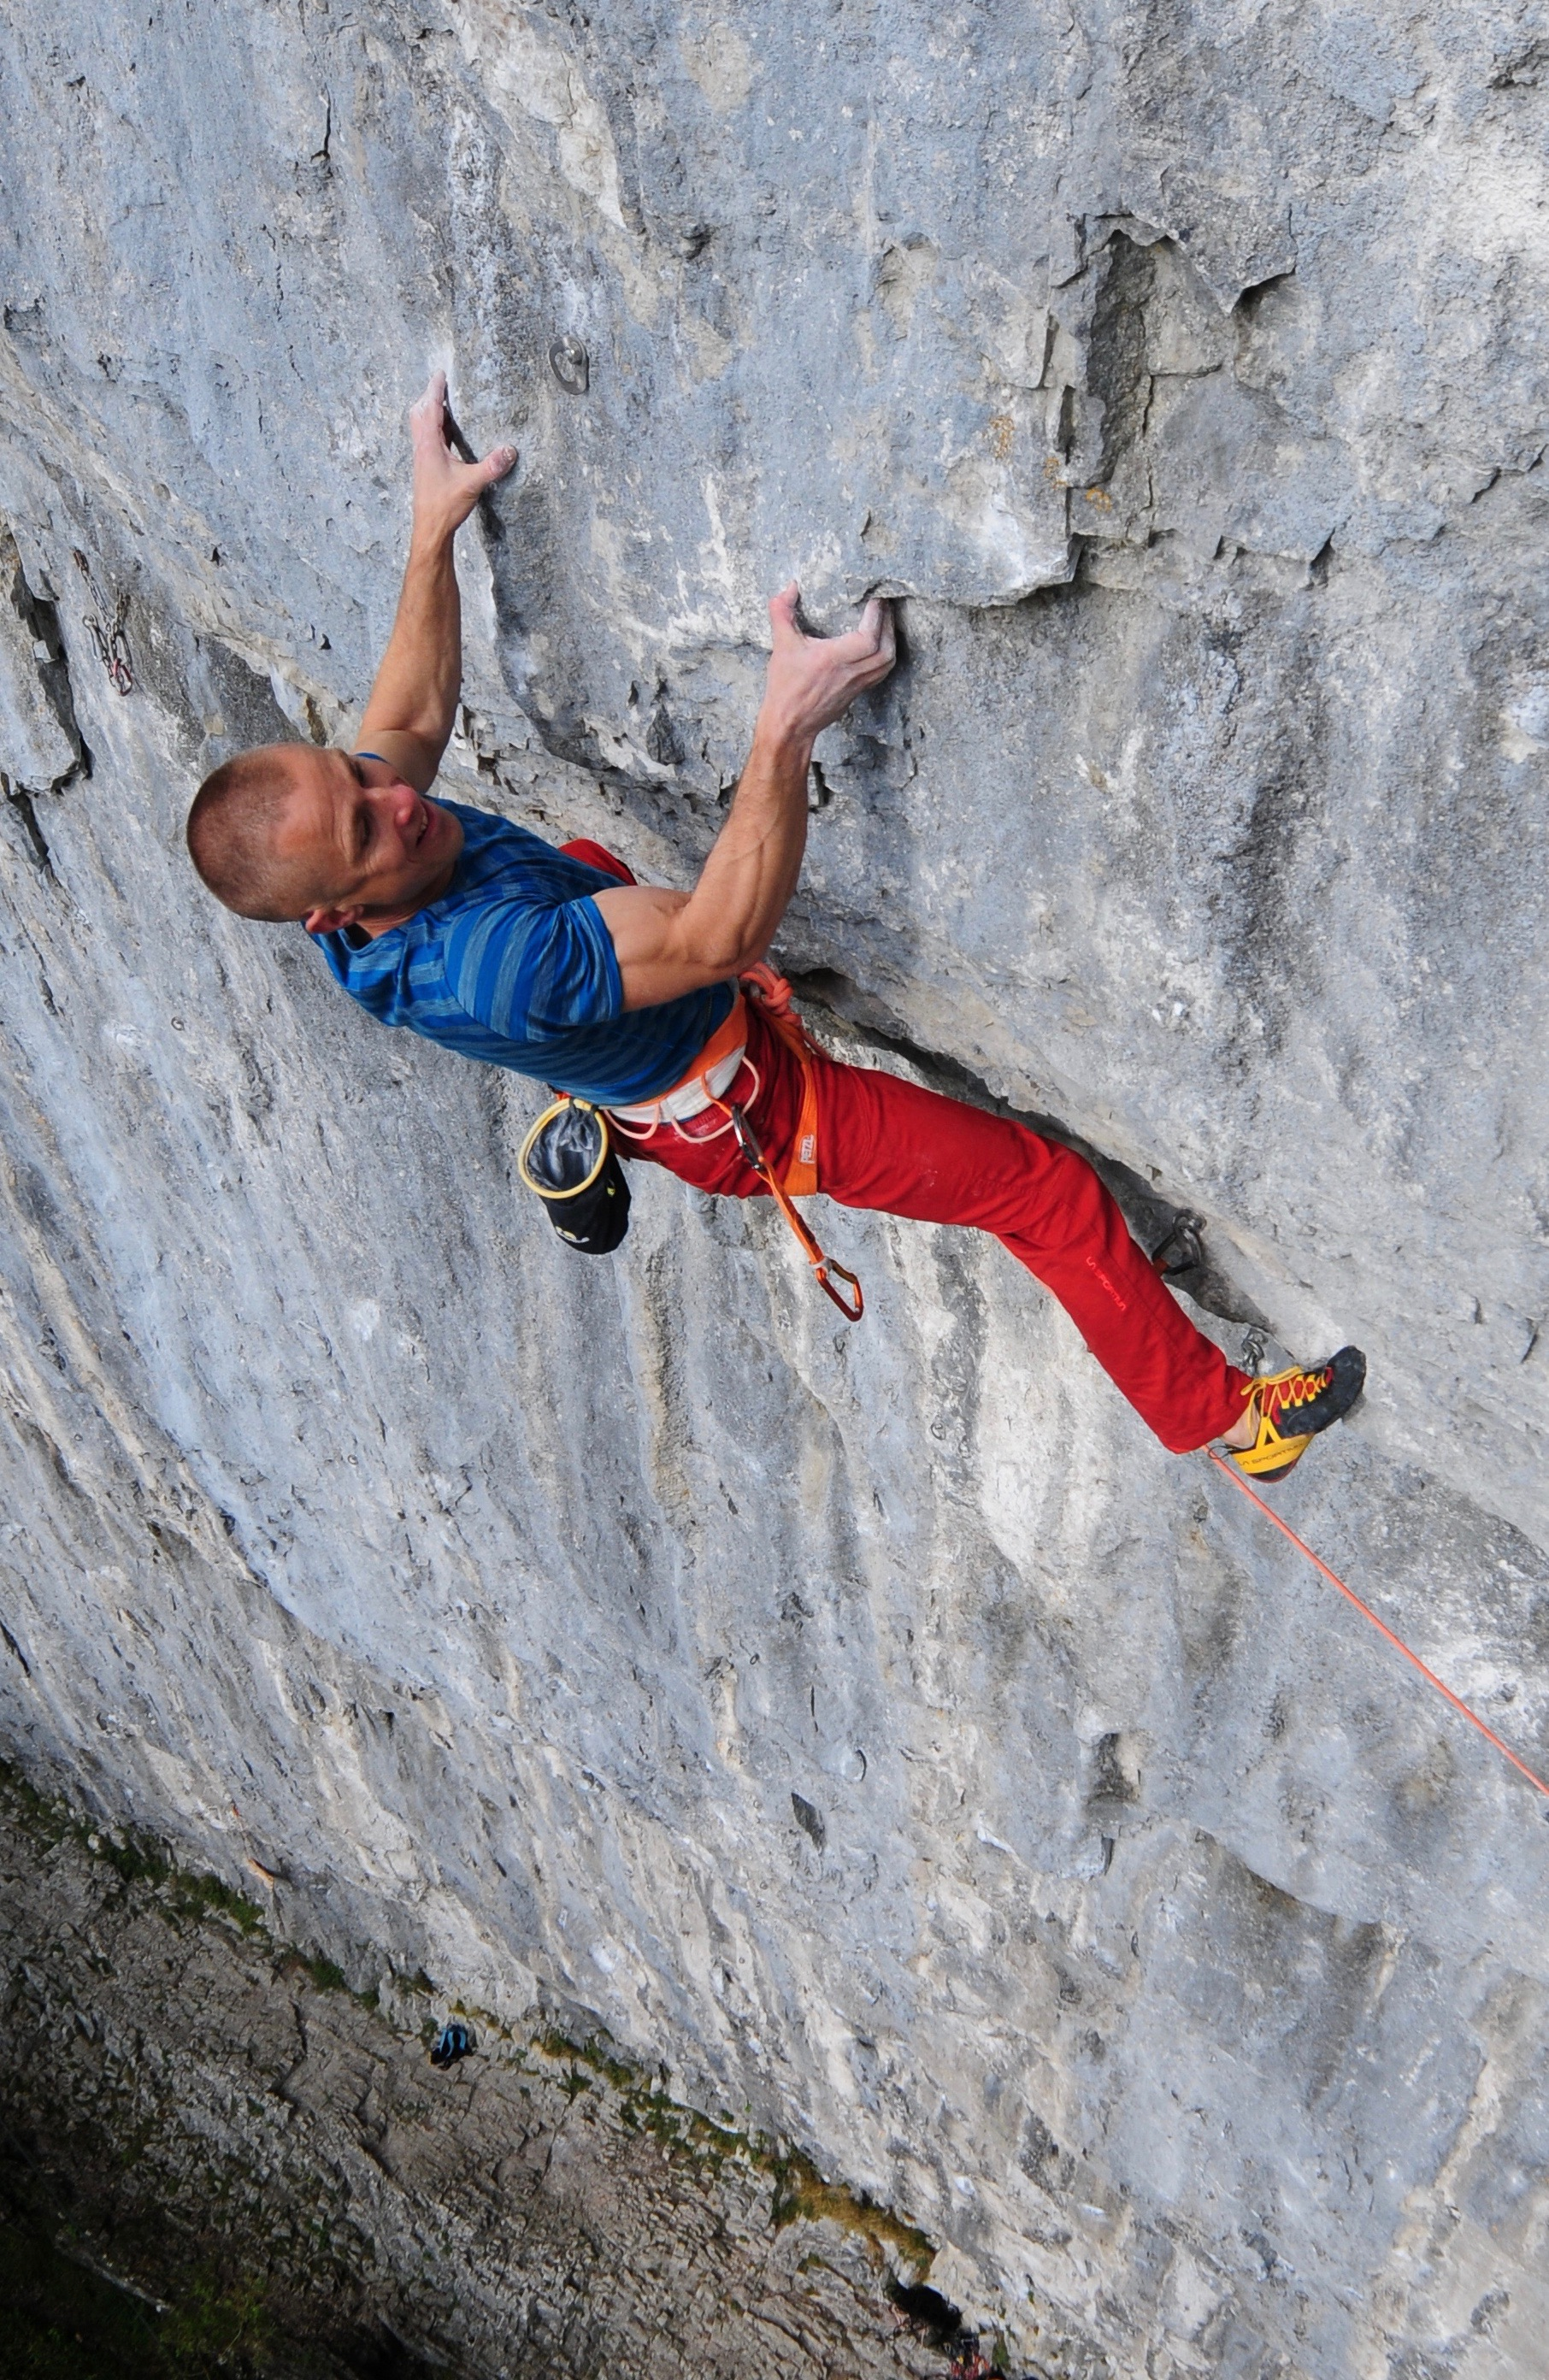 First ascent of Sabotage 8c+, Malham, UK, in 2016 wearing the Genius. Photo: Ian Parnell